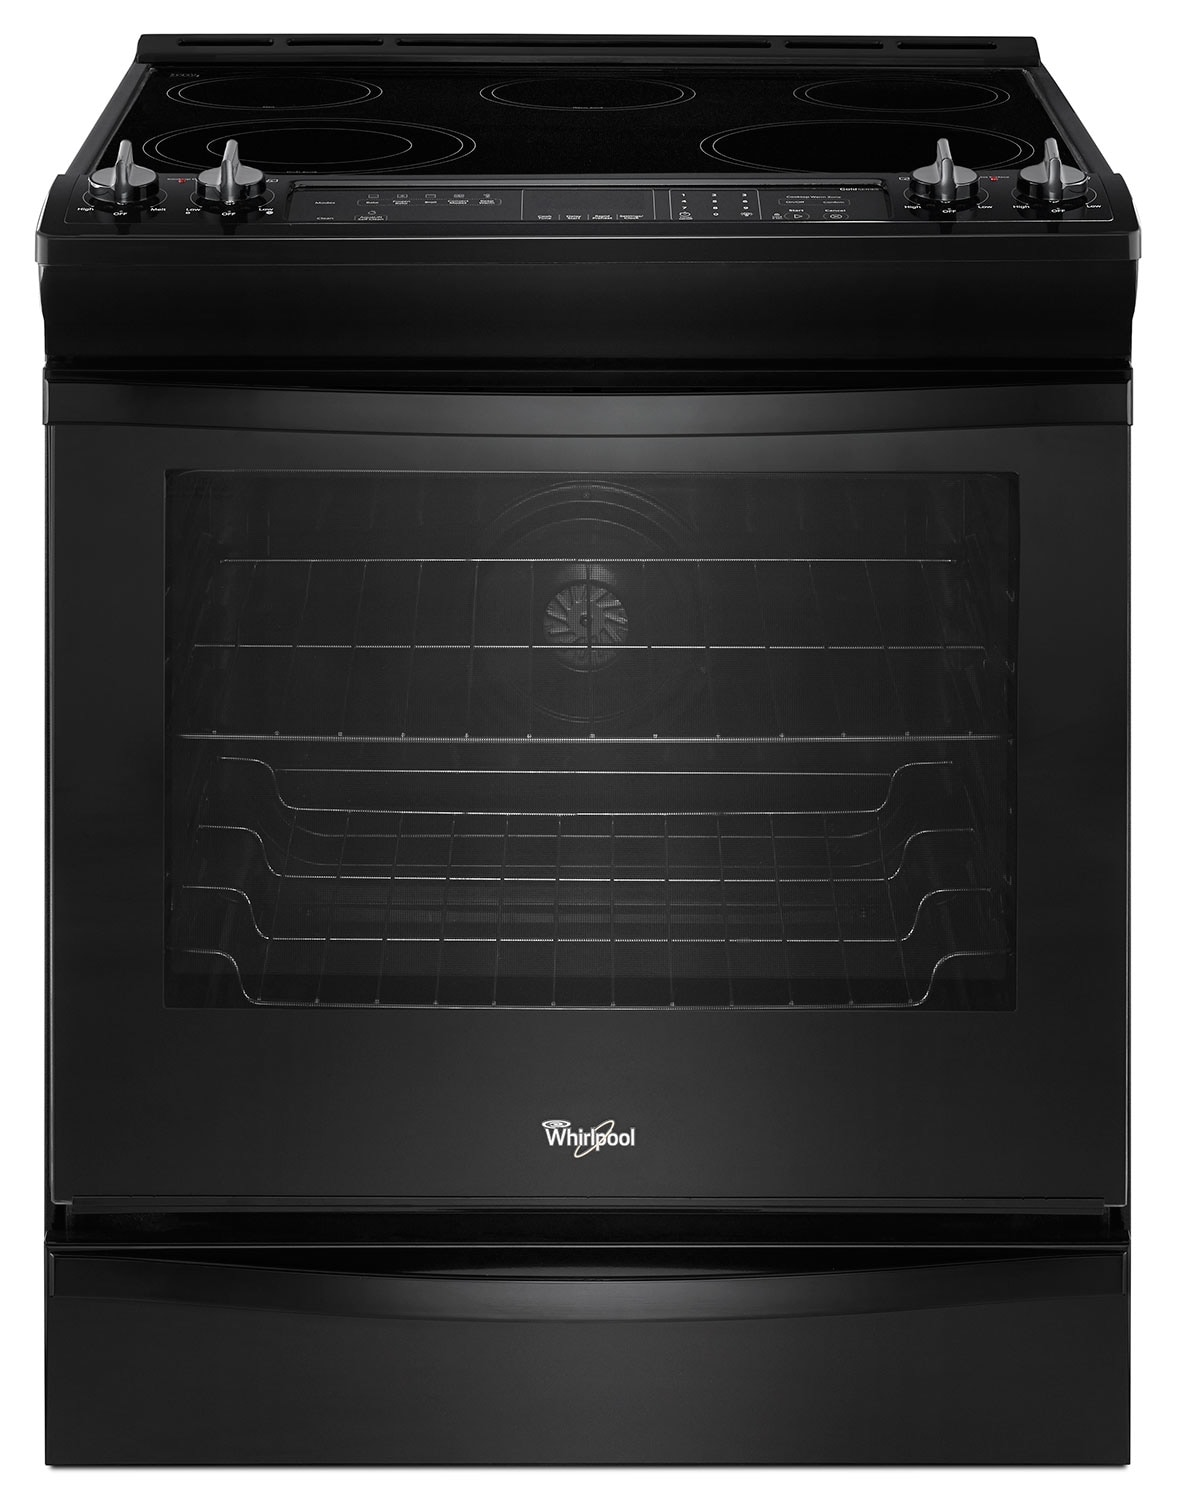 Cooking Products - Whirlpool Black Slide-In Electric Convection Range (6.2 Cu. Ft.) - YWEE730H0DB